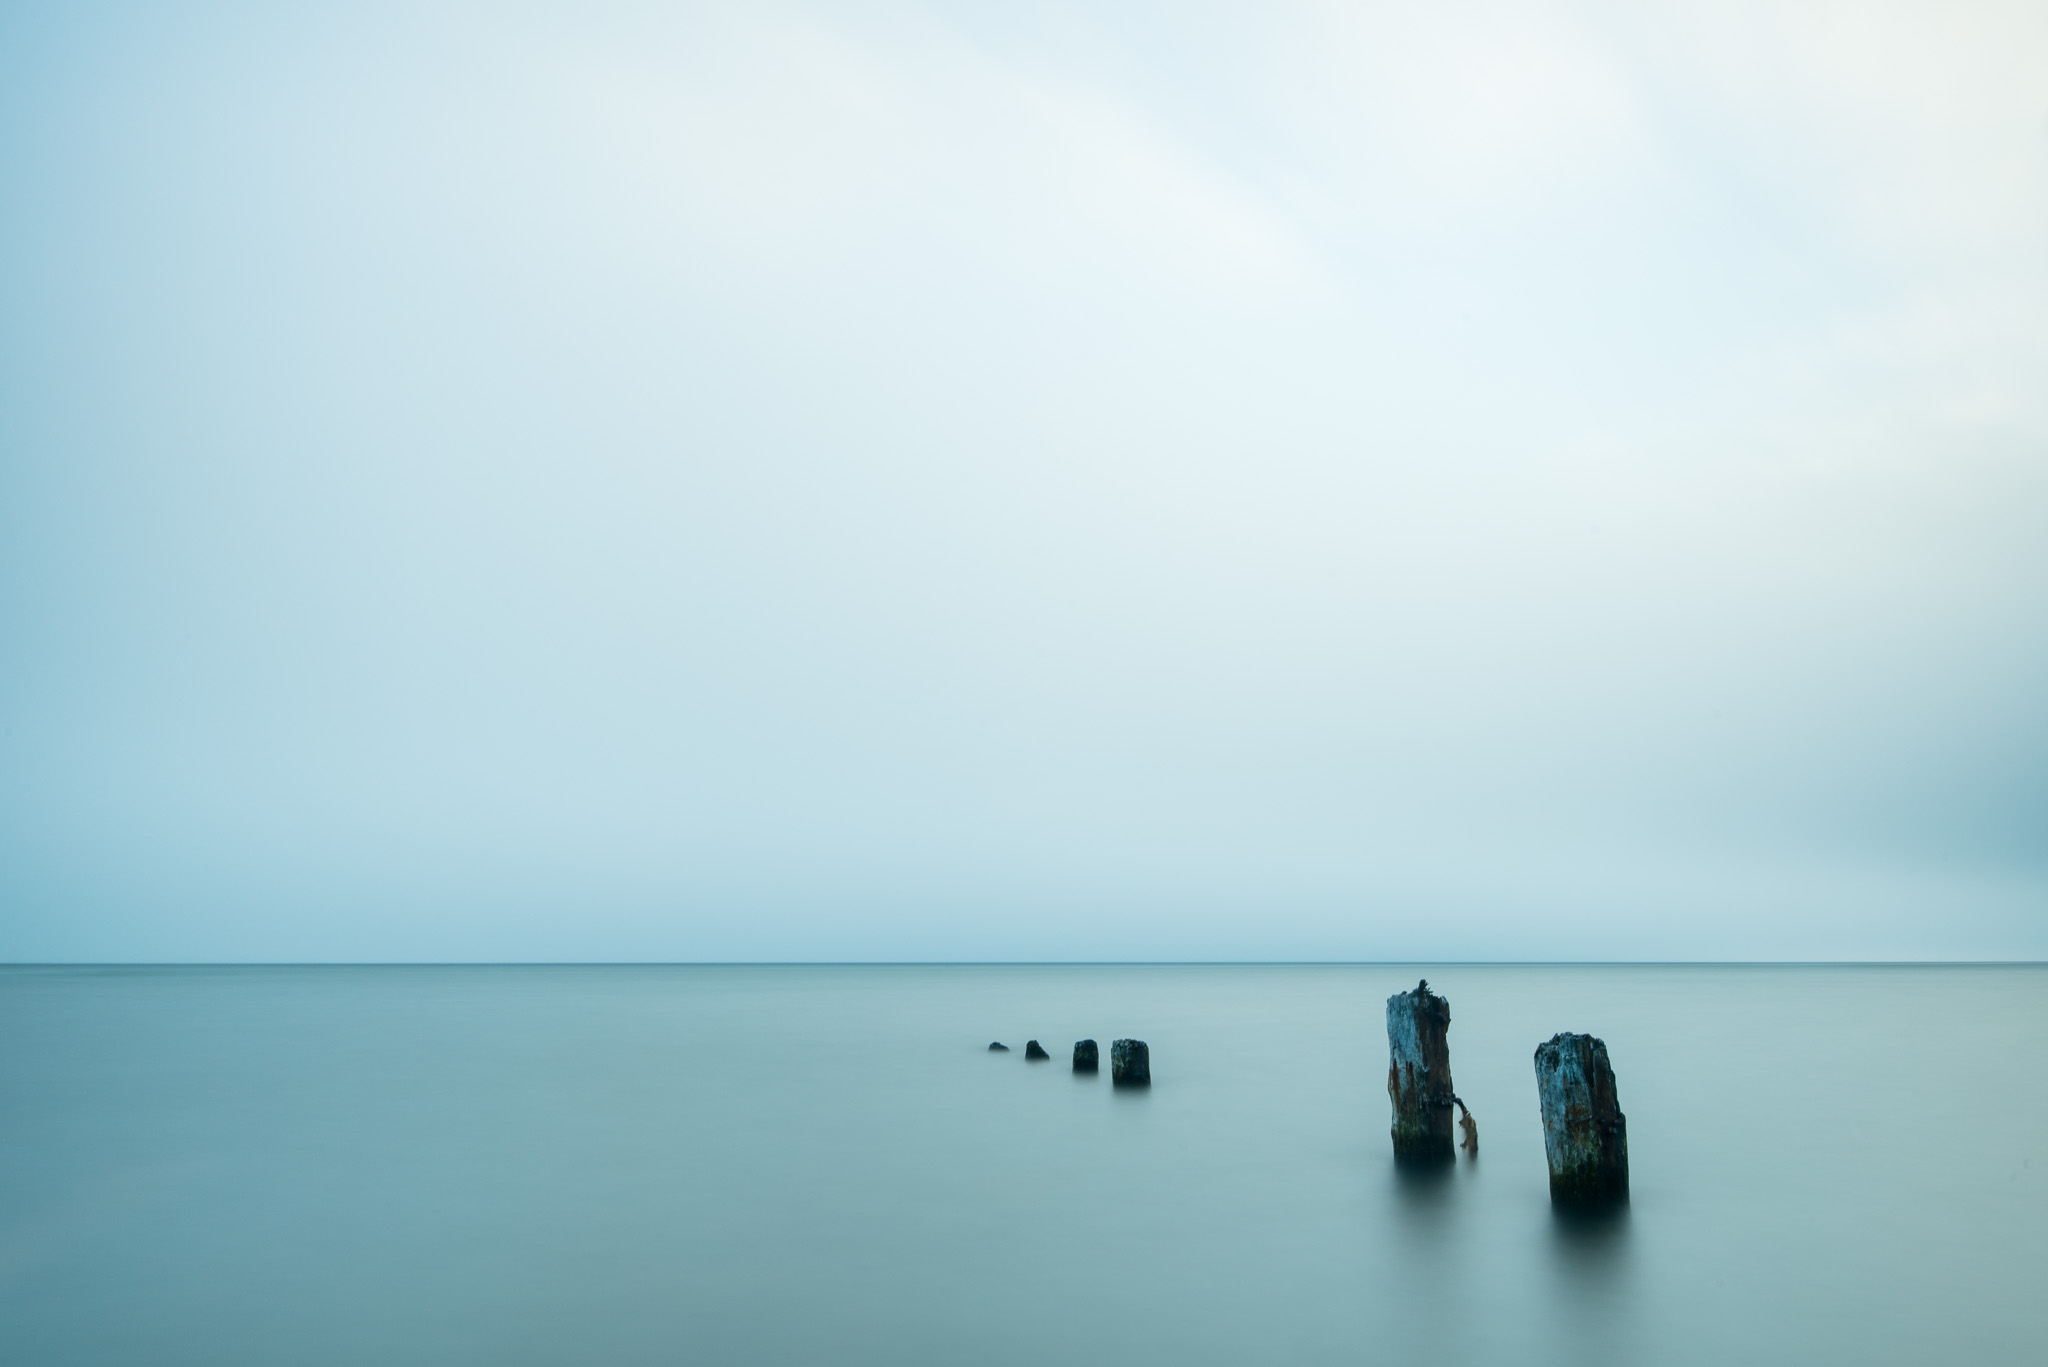 """After the fog came in we left Sheringham Point and headed to Jordan River where we photographed this row of pilings. The fog on the horizon actually made for a great backdrop, creating an """"infinity"""" effect where typically you can see the Olympic Peninsula in Washington."""